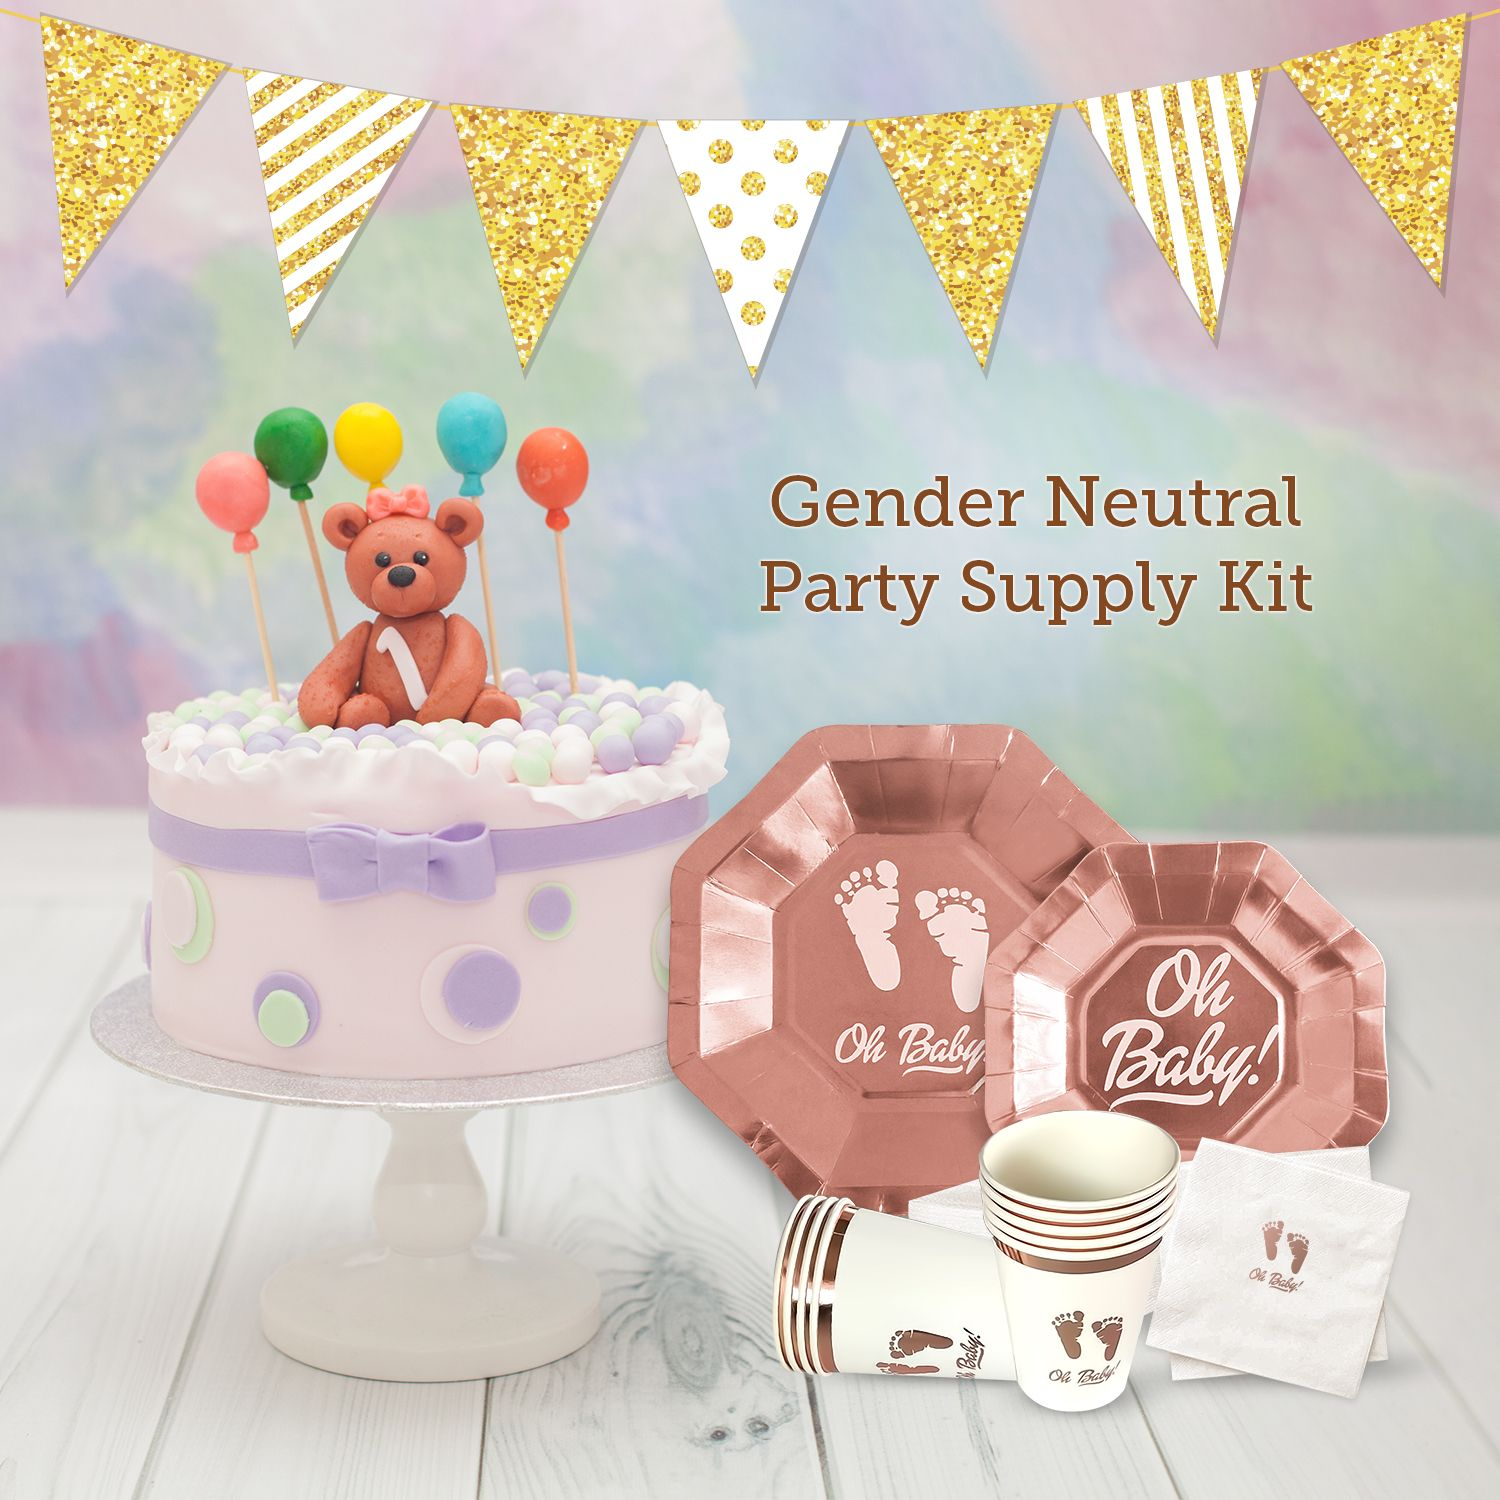 Get the one baby shower party supplies kit that's the